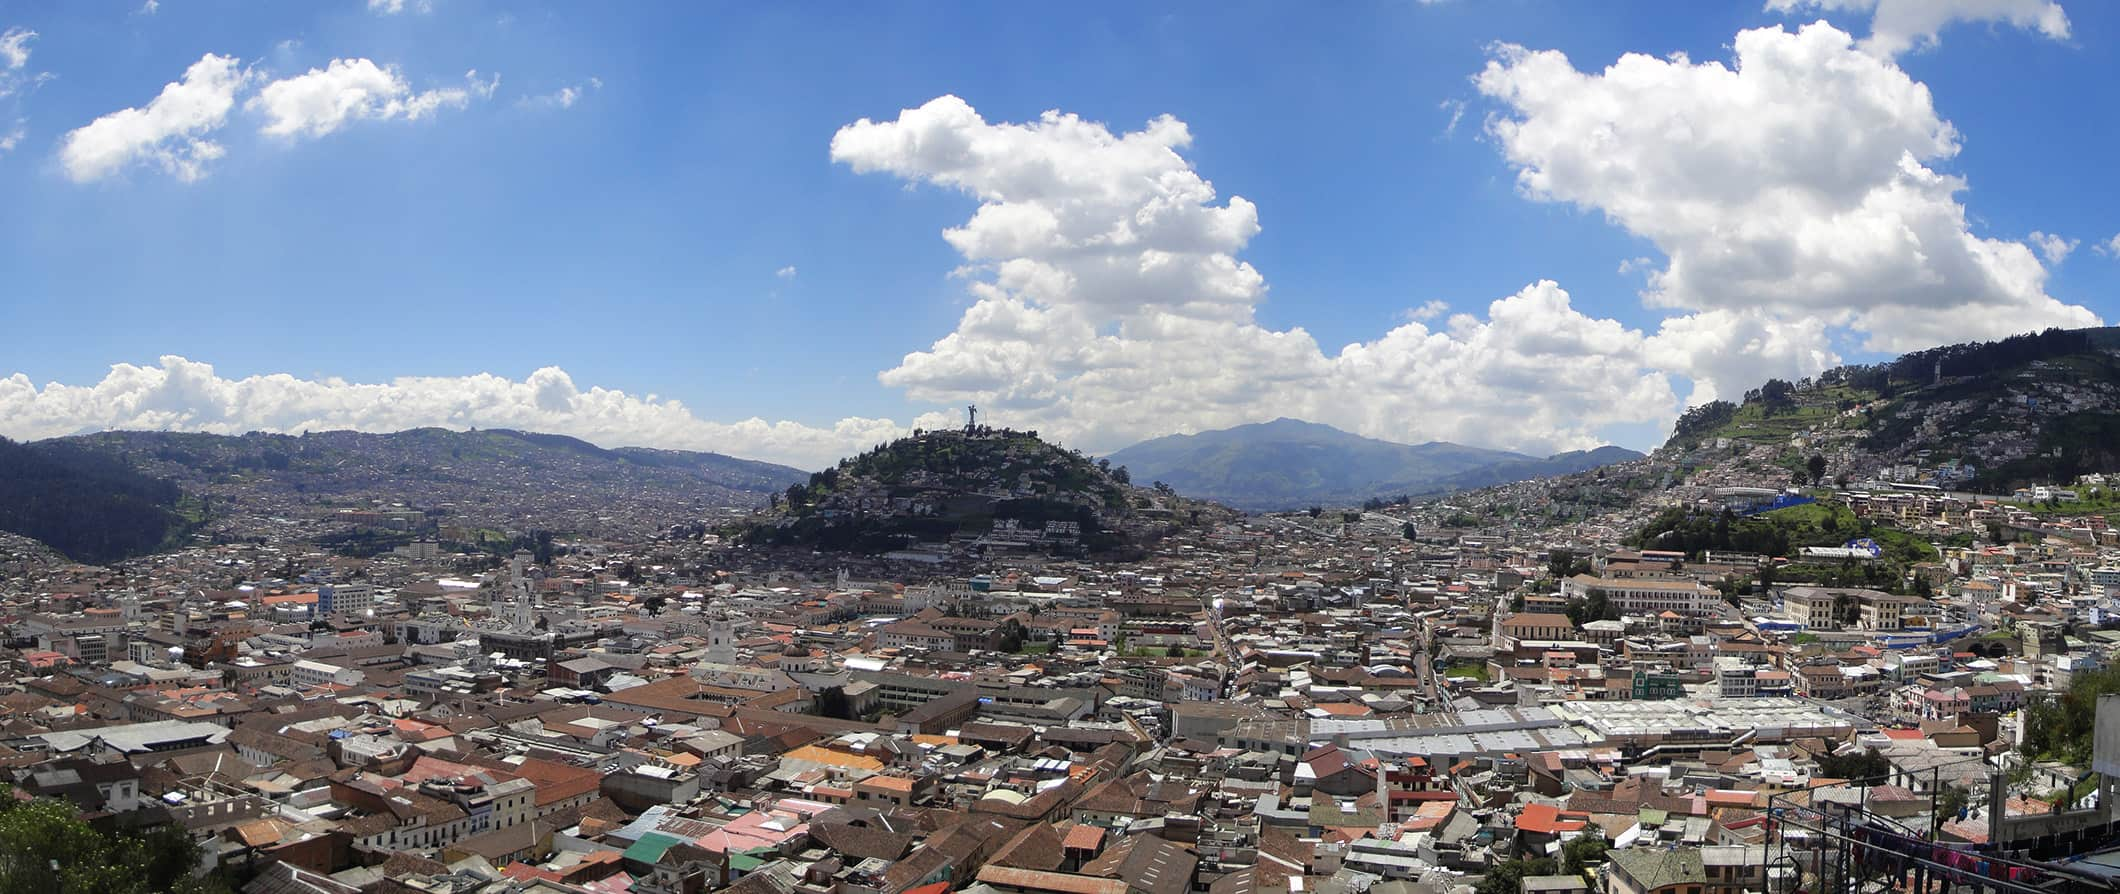 an aerial view of Quito, Ecuador